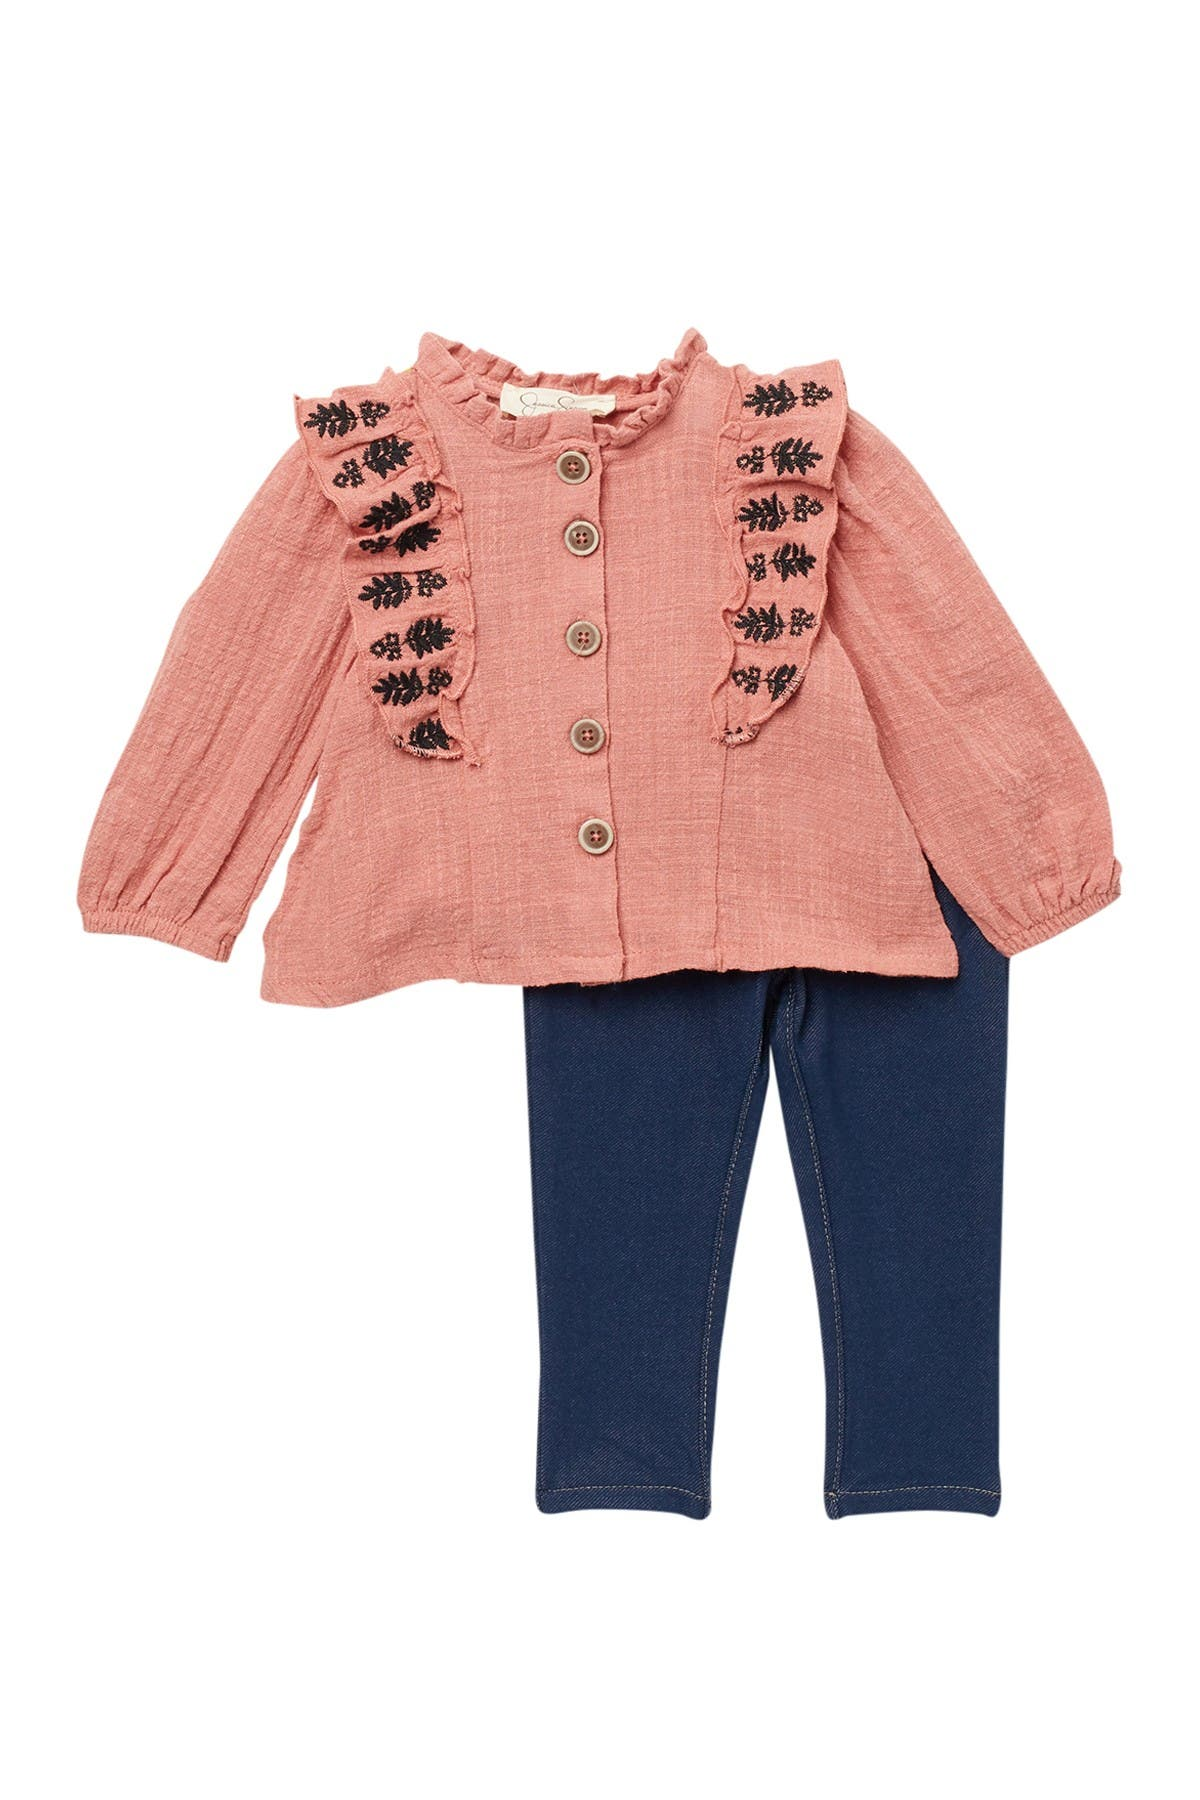 Image of Jessica Simpson Embroidered Gauze Ruffle Top & Pants